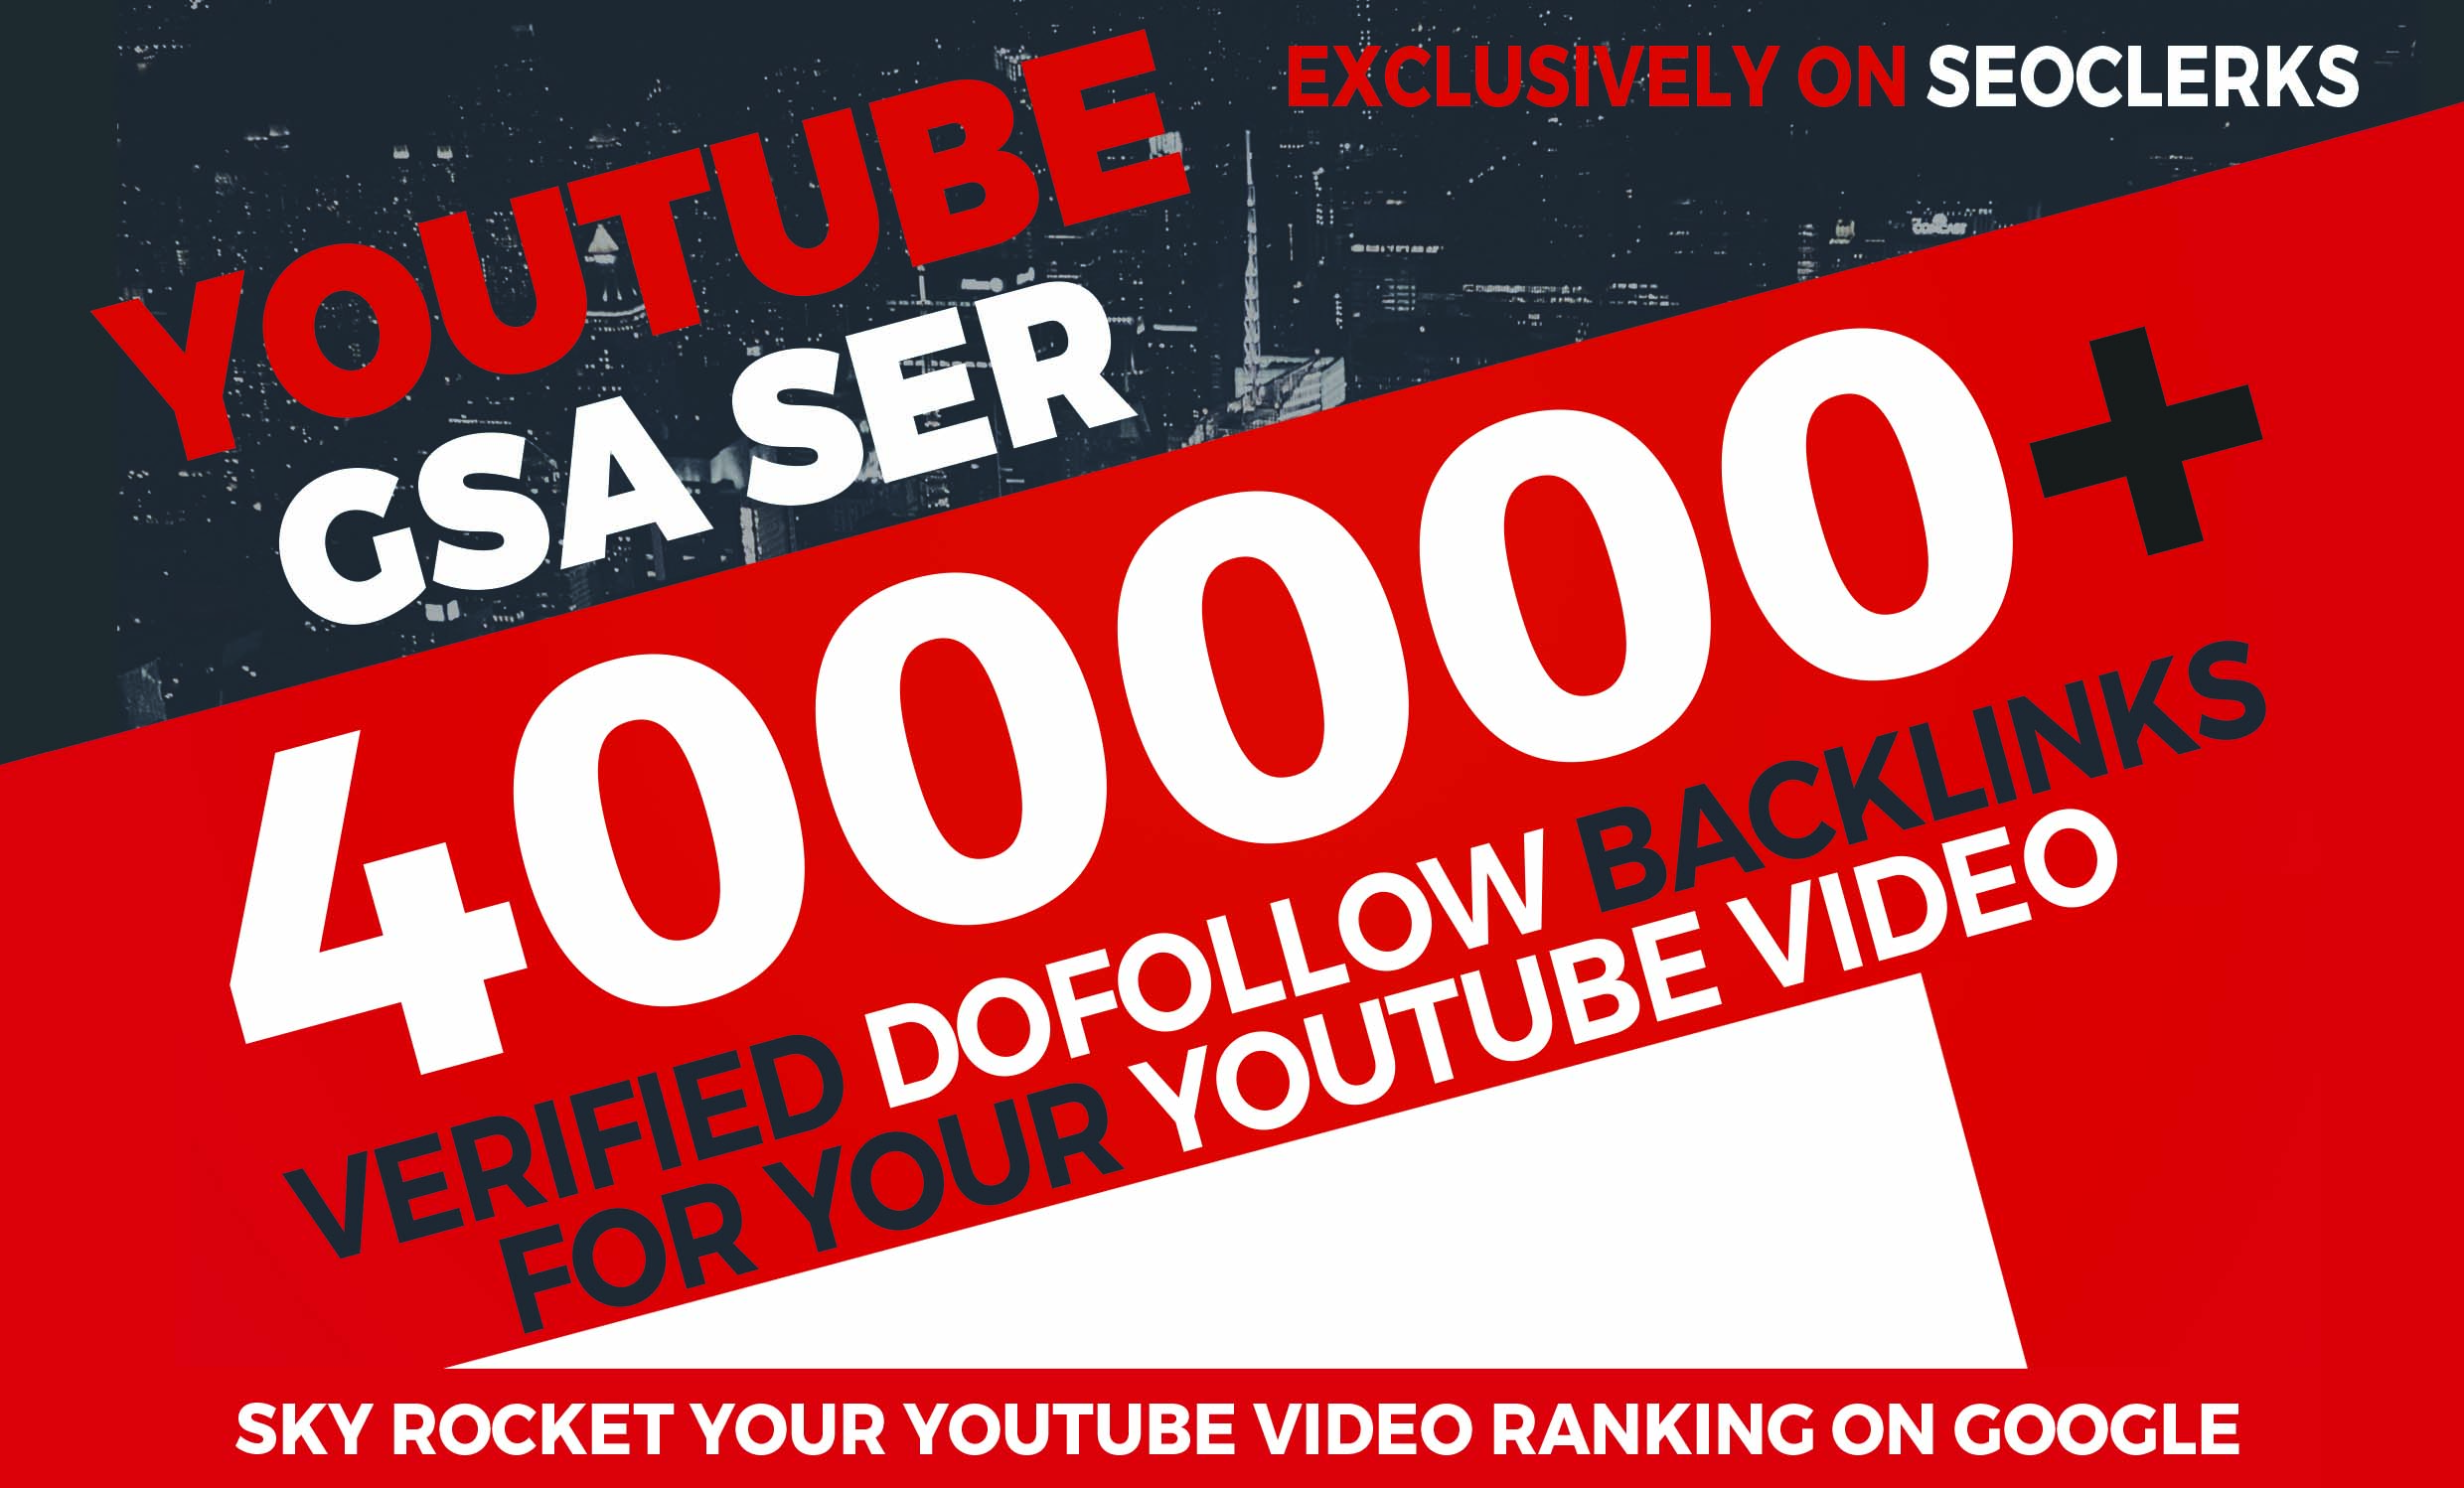 400,000 YouTube GSA SER Verified Backlinks to rank your video in Google